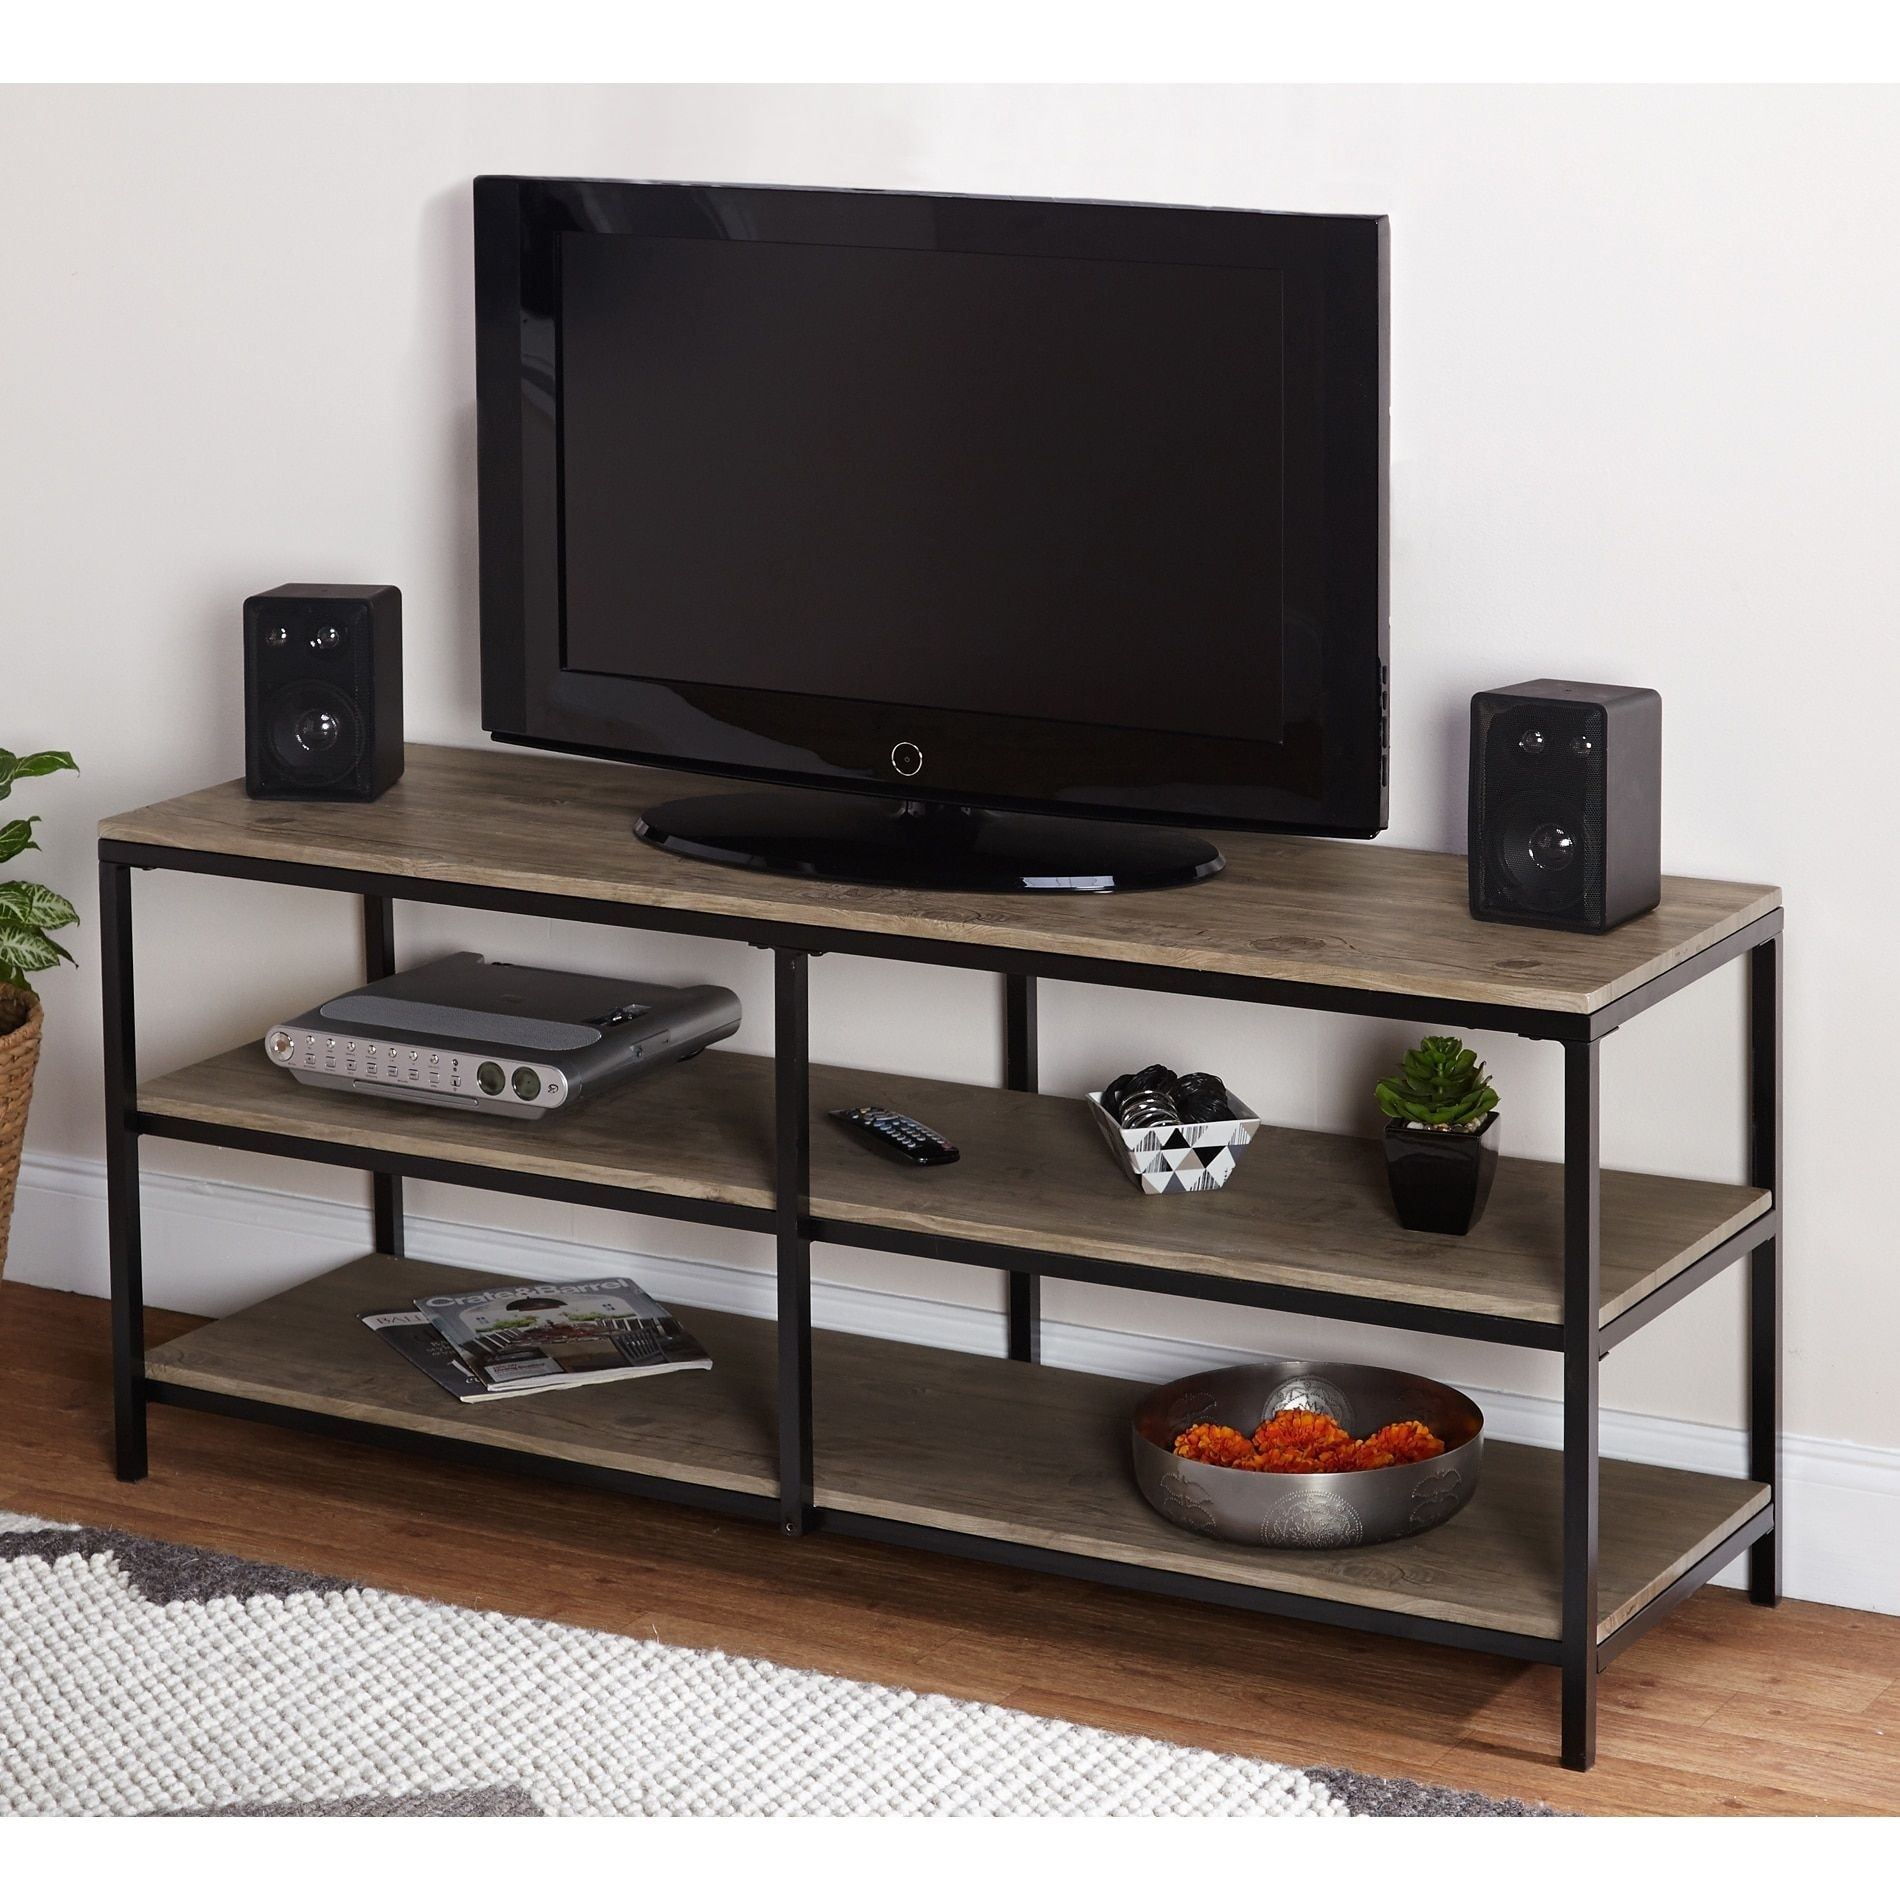 TV Stand In Modern Style. It Is Made Of Metal And Glass. Includes 2 Open  Shelves For Storing DVD, Game Console And Others TV Components.